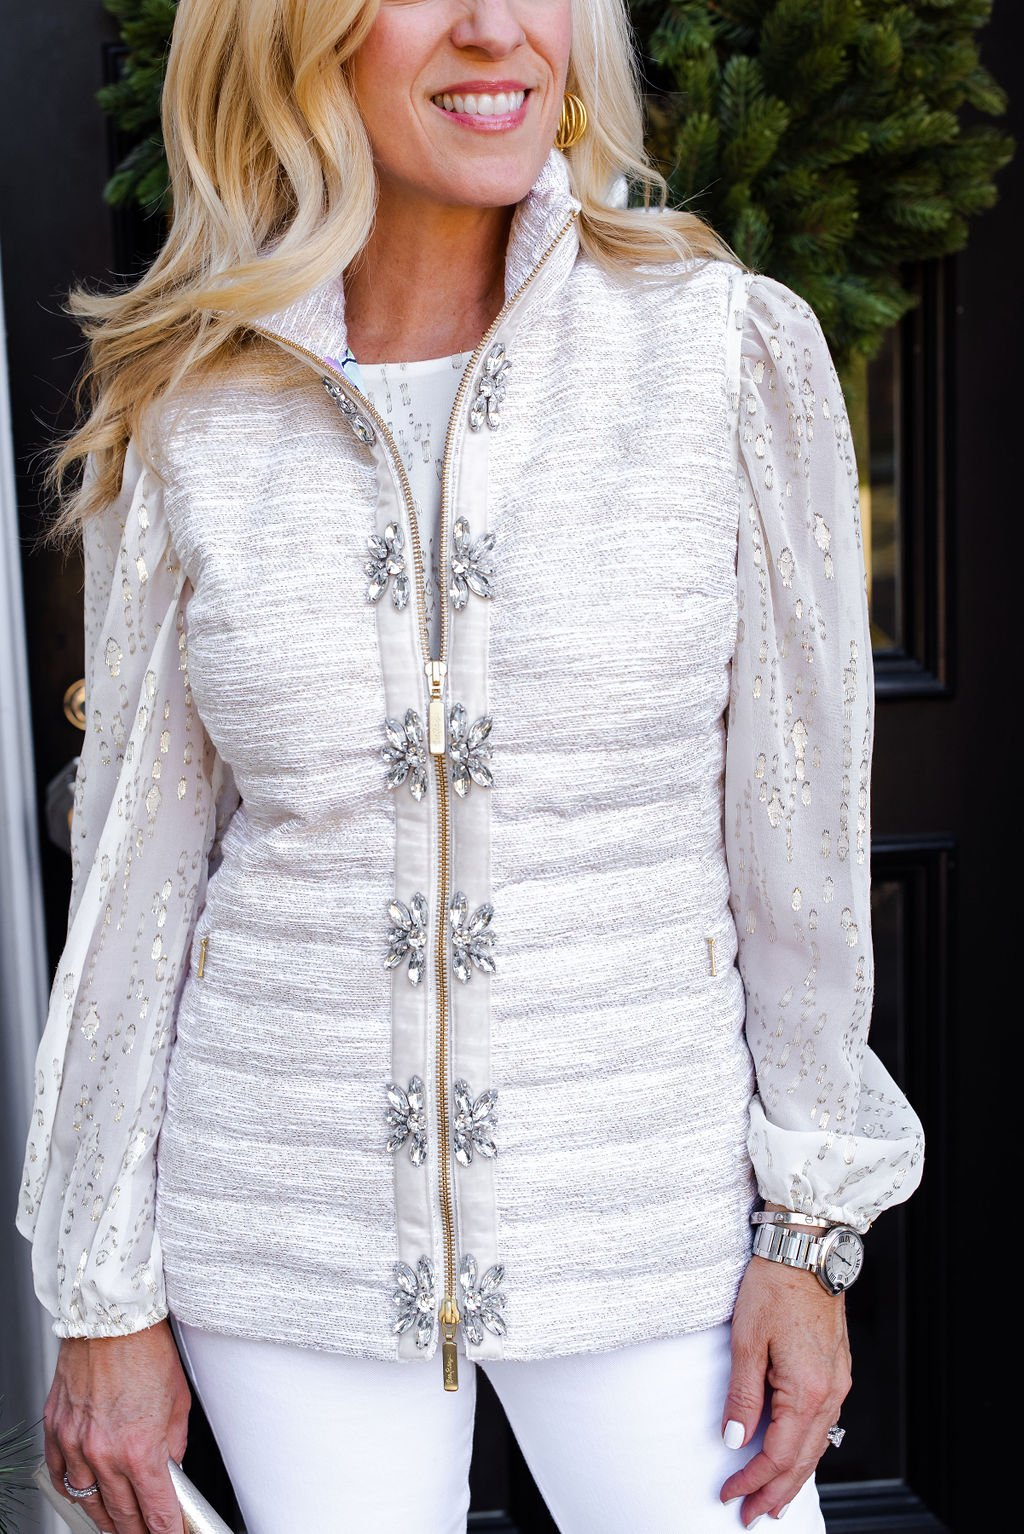 Lilly Pulitzer Gold Puffer Vest, Alicia Wood, Dallas Lifestyle Expert, Dallas Fashion blogger, Dallas Lifestyle Blog, How to Wear Jeans to a Holiday Party